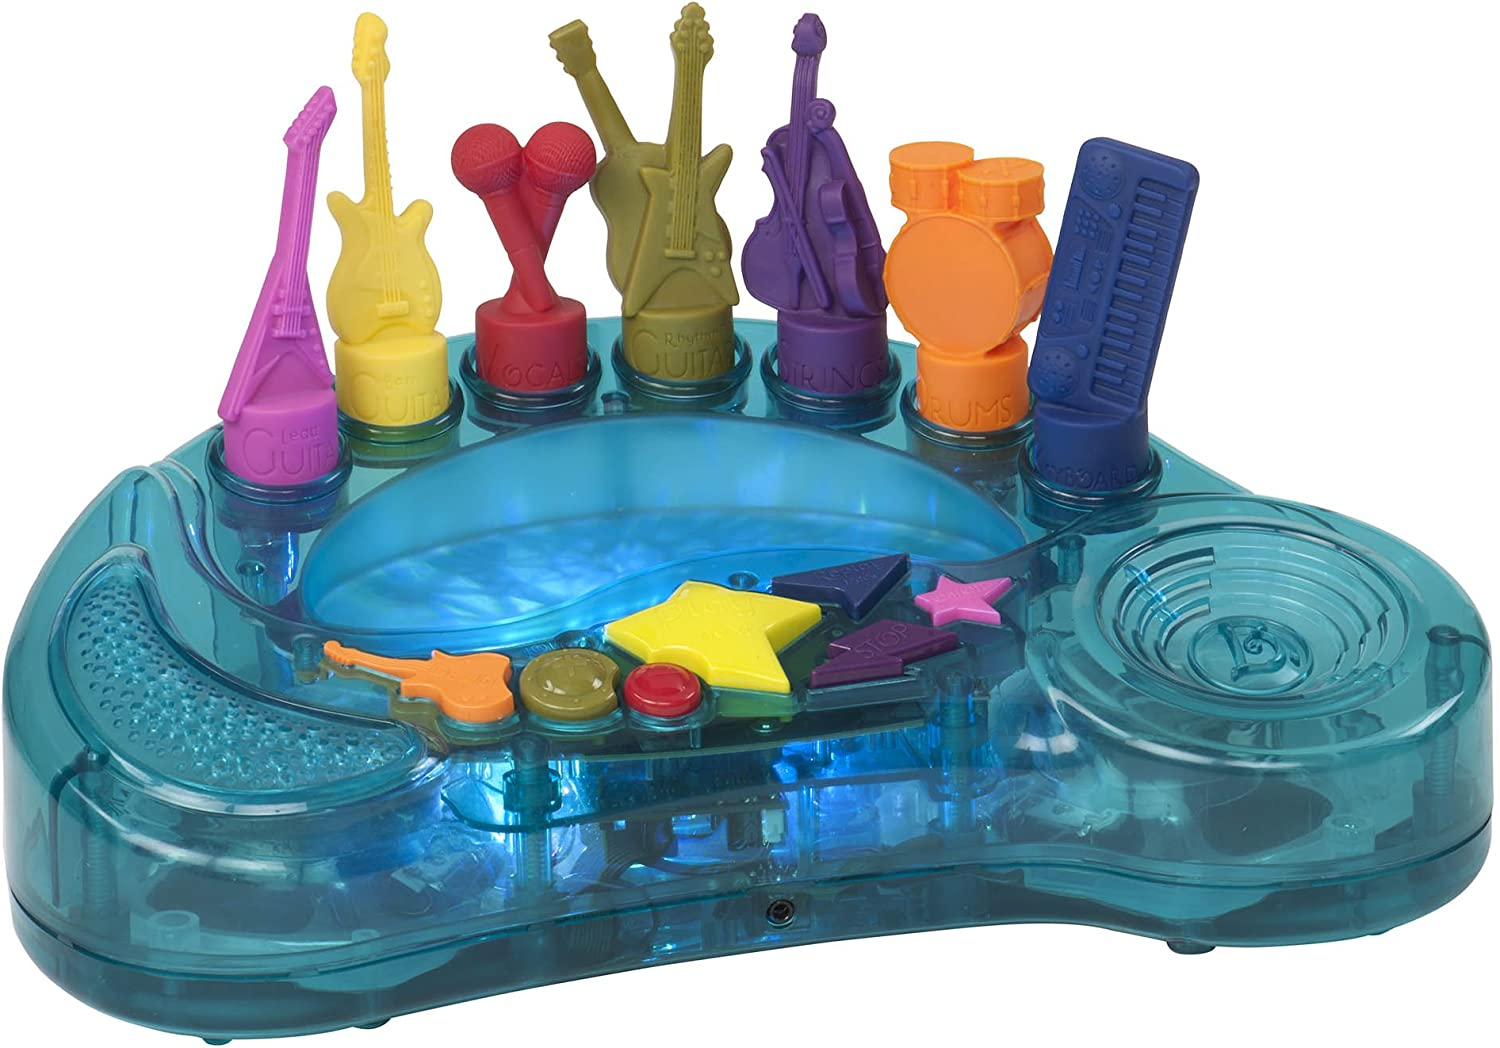 B. toys – Rockestra – 7 Musical Instruments On an Interactive Light-Up Music Orchestra For Toddlers 3 years + (15 Songs)